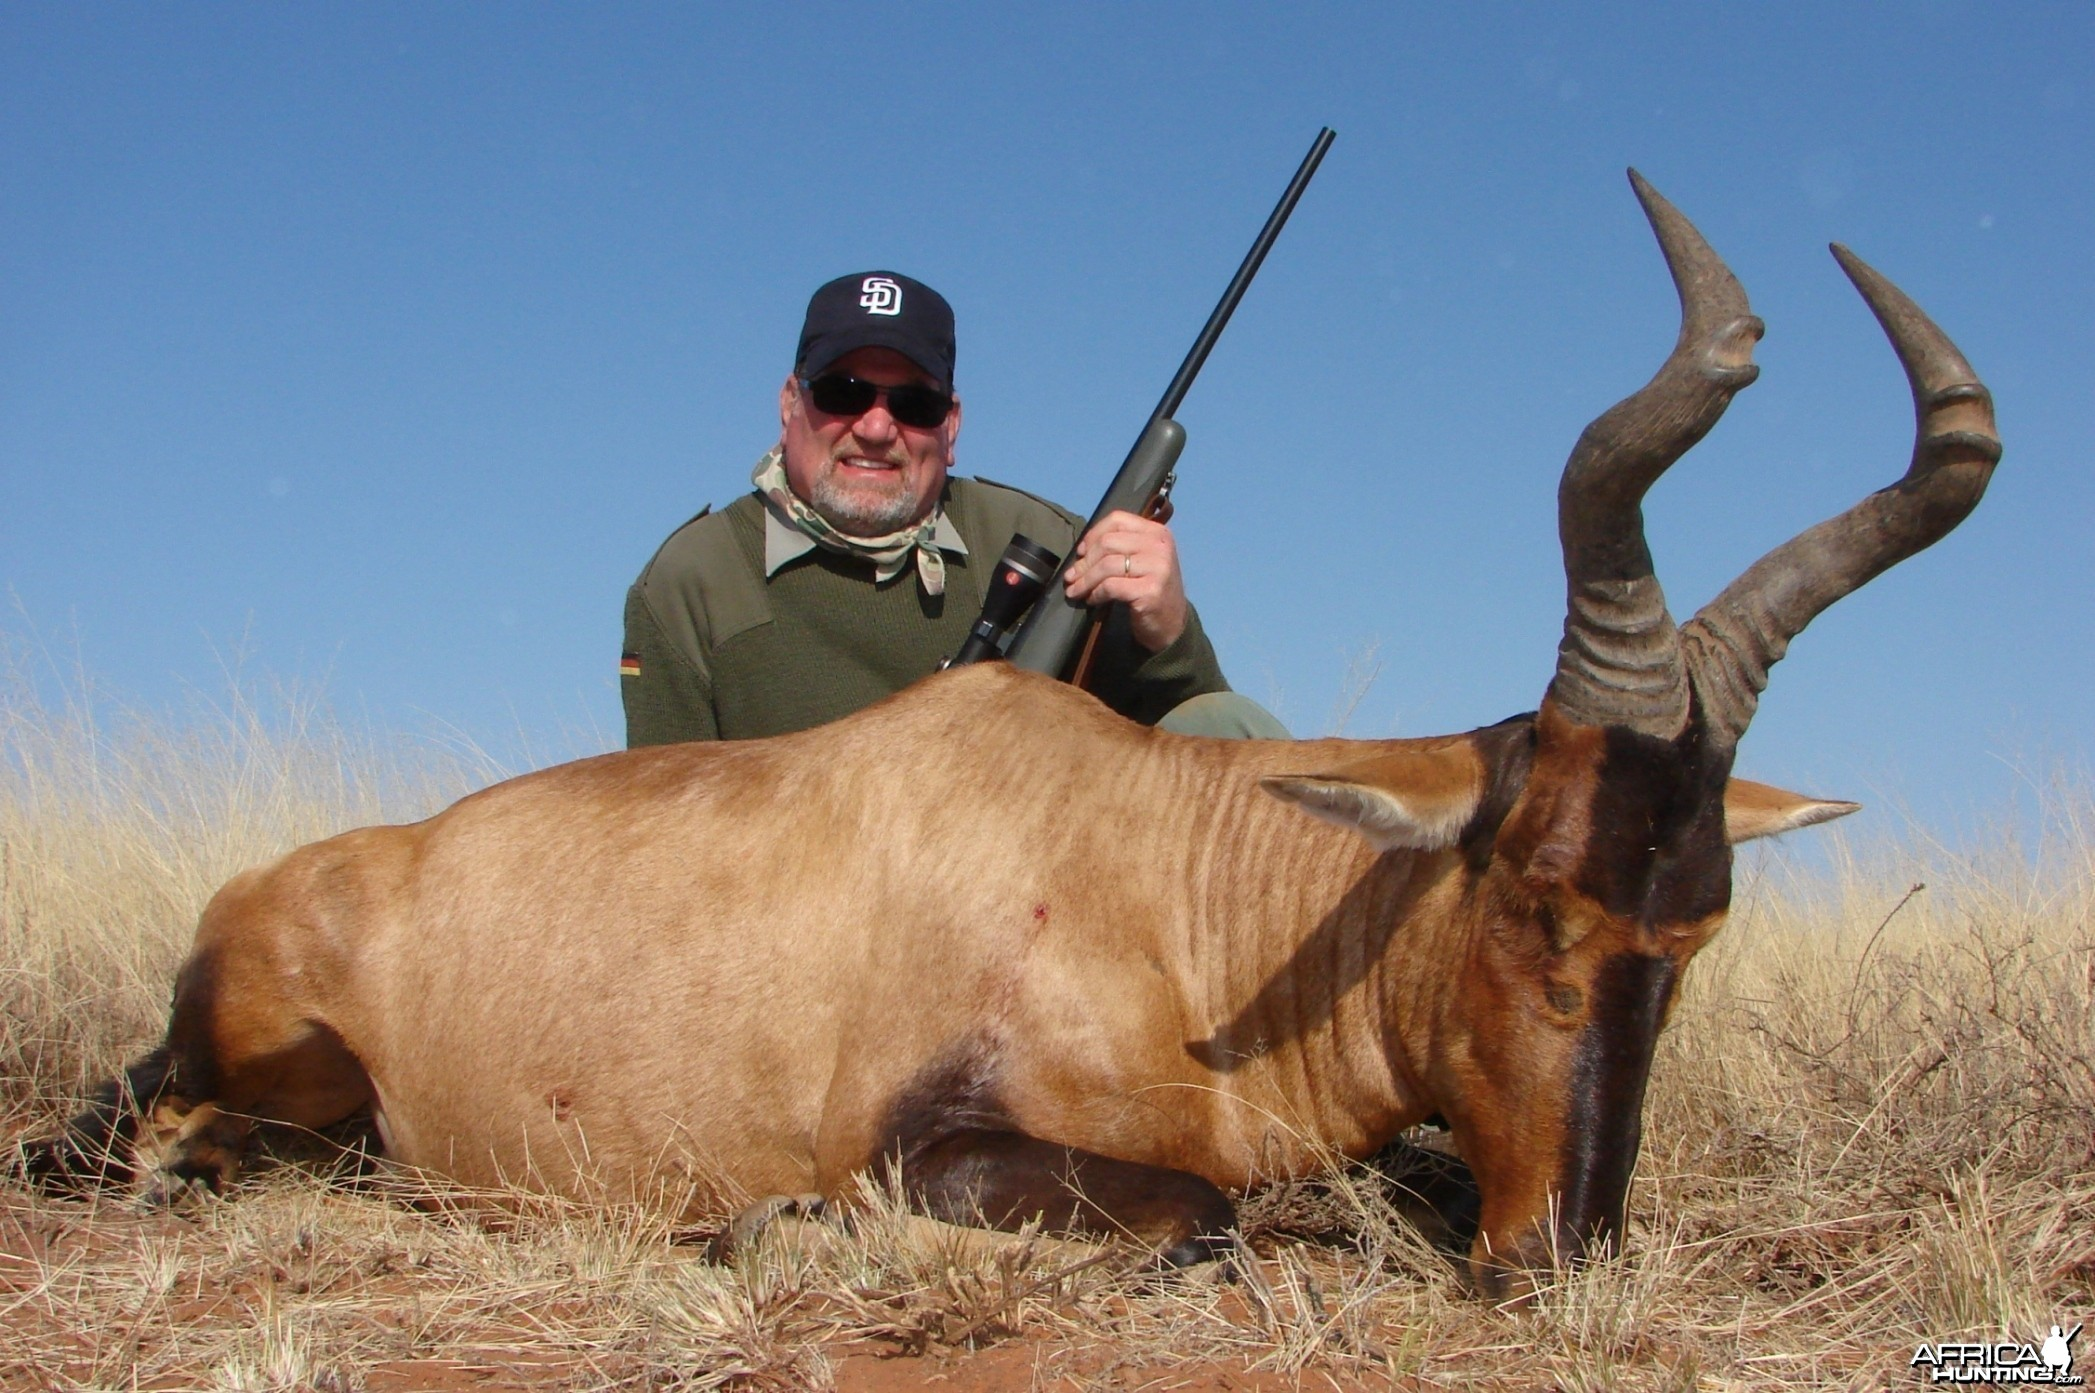 Hunting Red Hartebeest with Wintershoek Johnny Vivier Safaris in SA